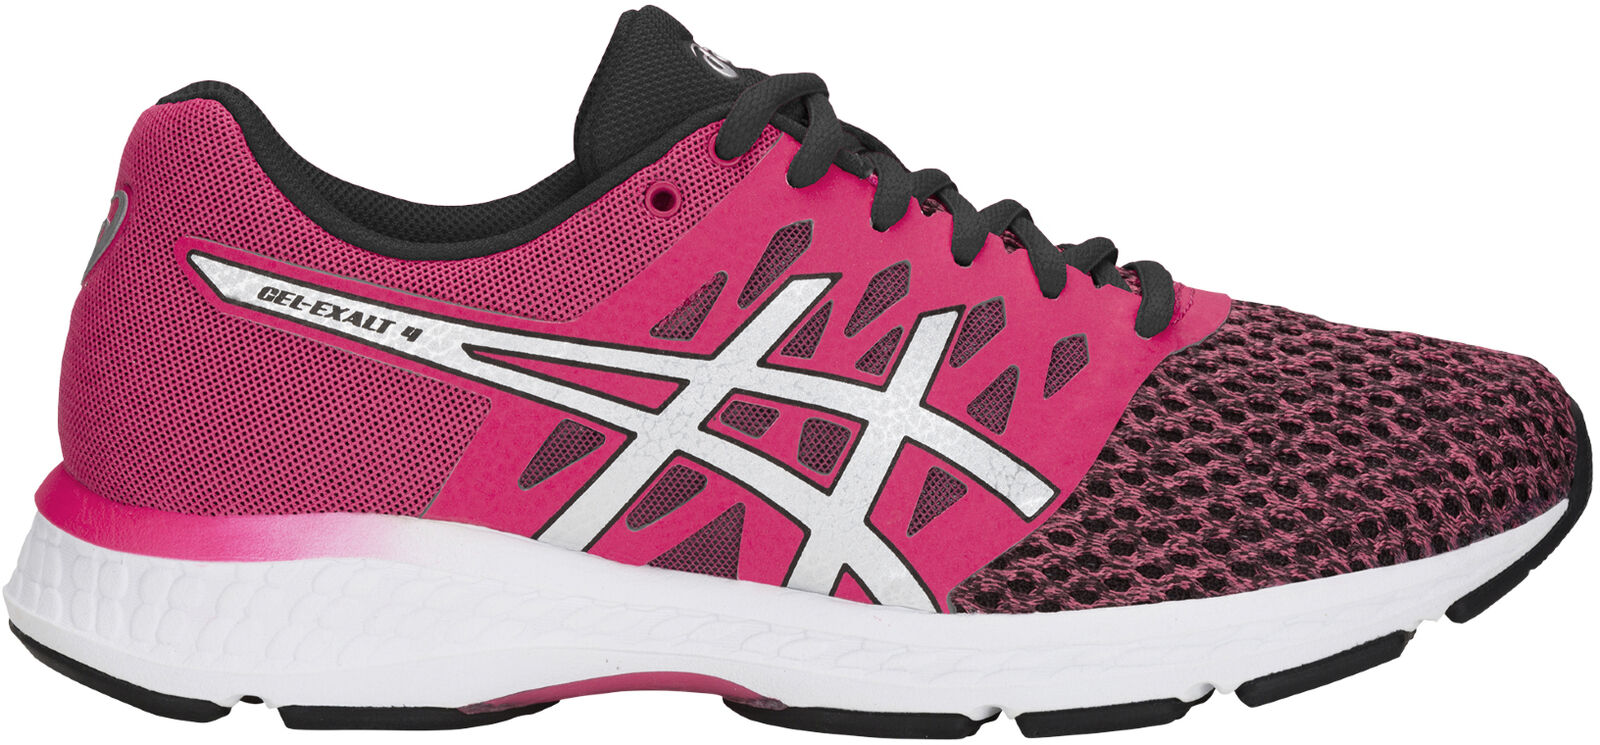 Asics Gel Exalt 4 Womens Running shoes - Pink